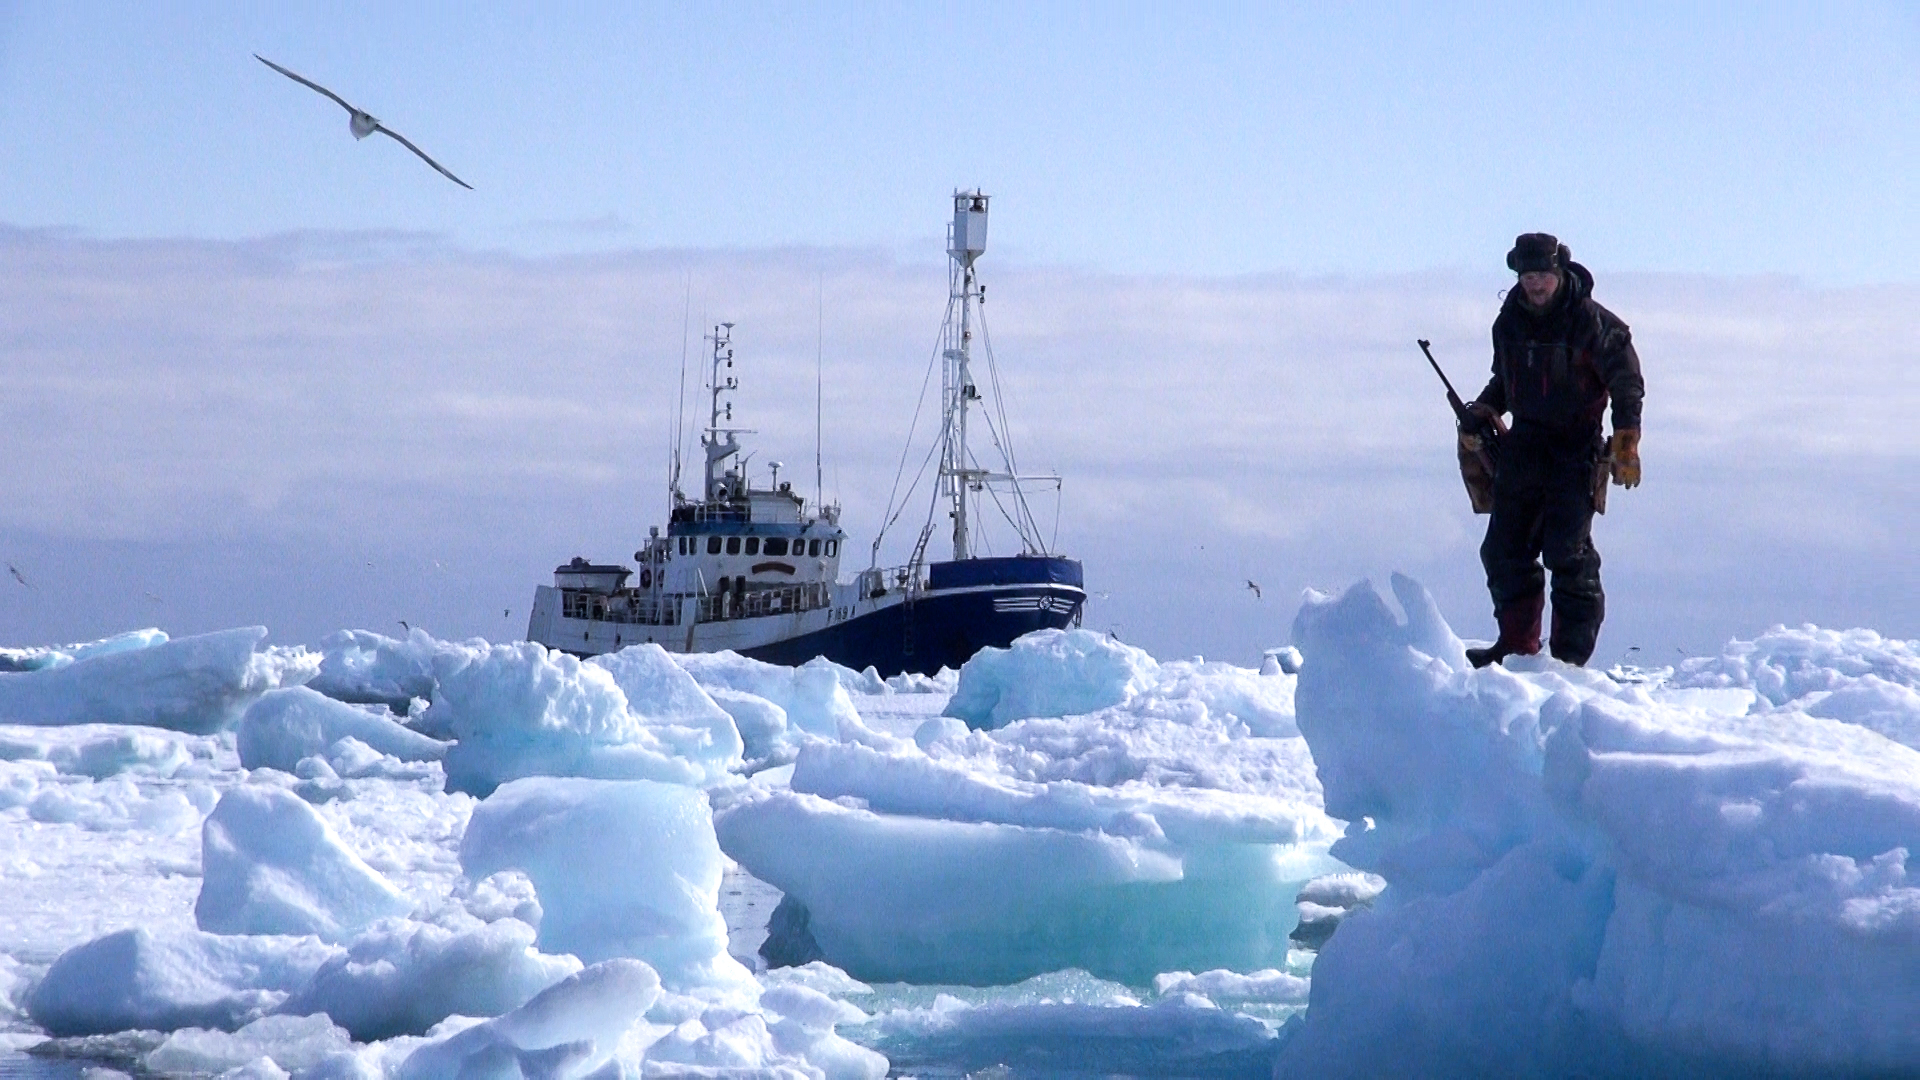 F Interview article Last Sealhunt (1 of 1)-5.jpg